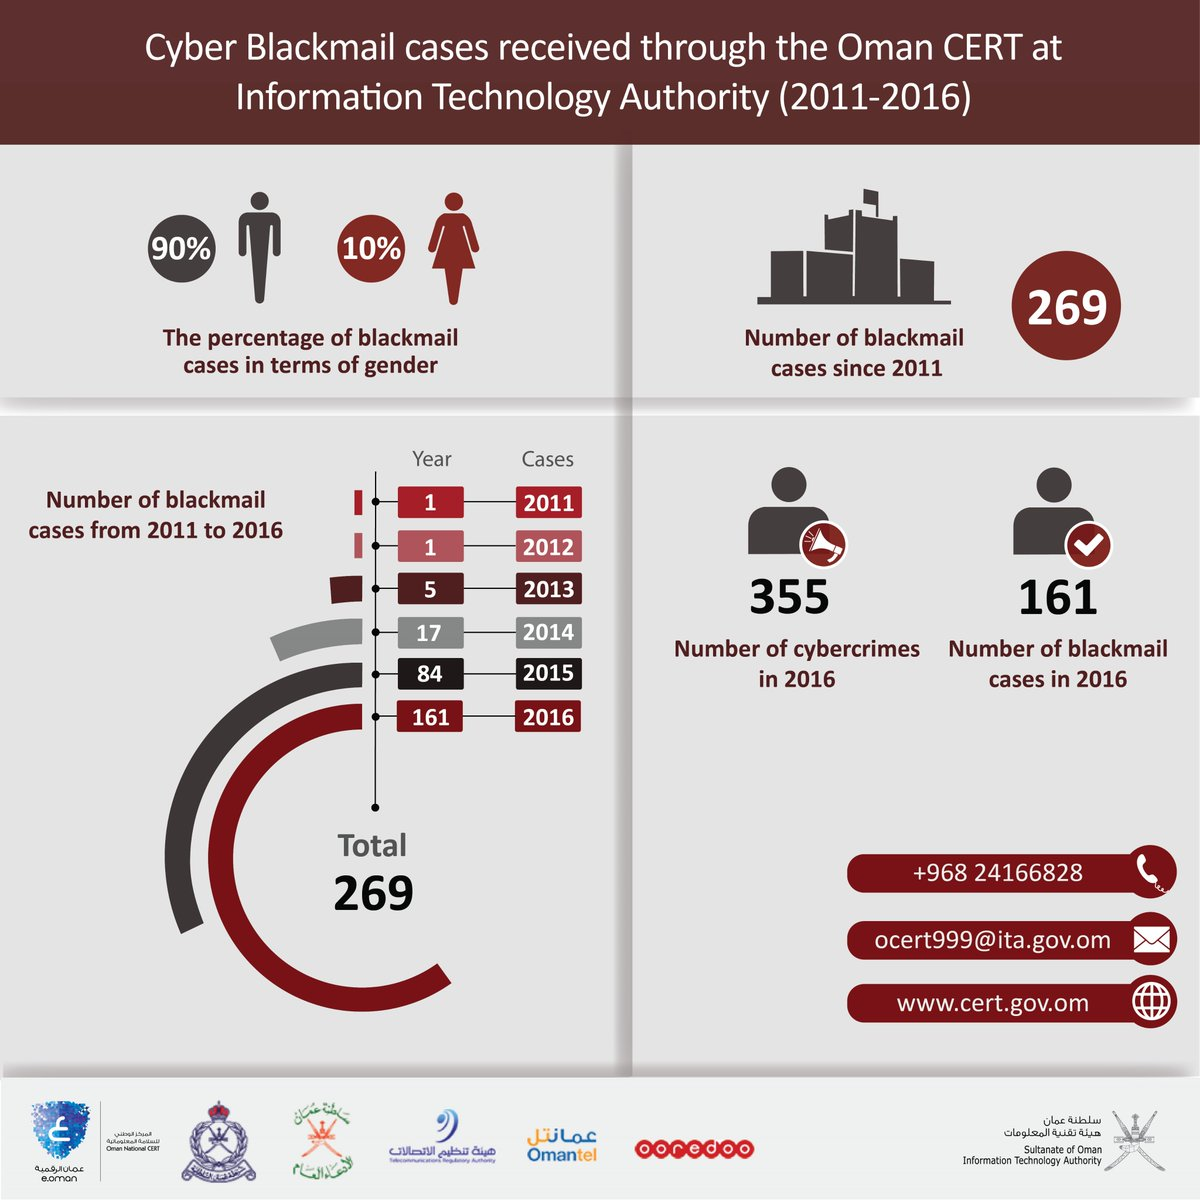 Cyber Blackmail Infographic (Oman)